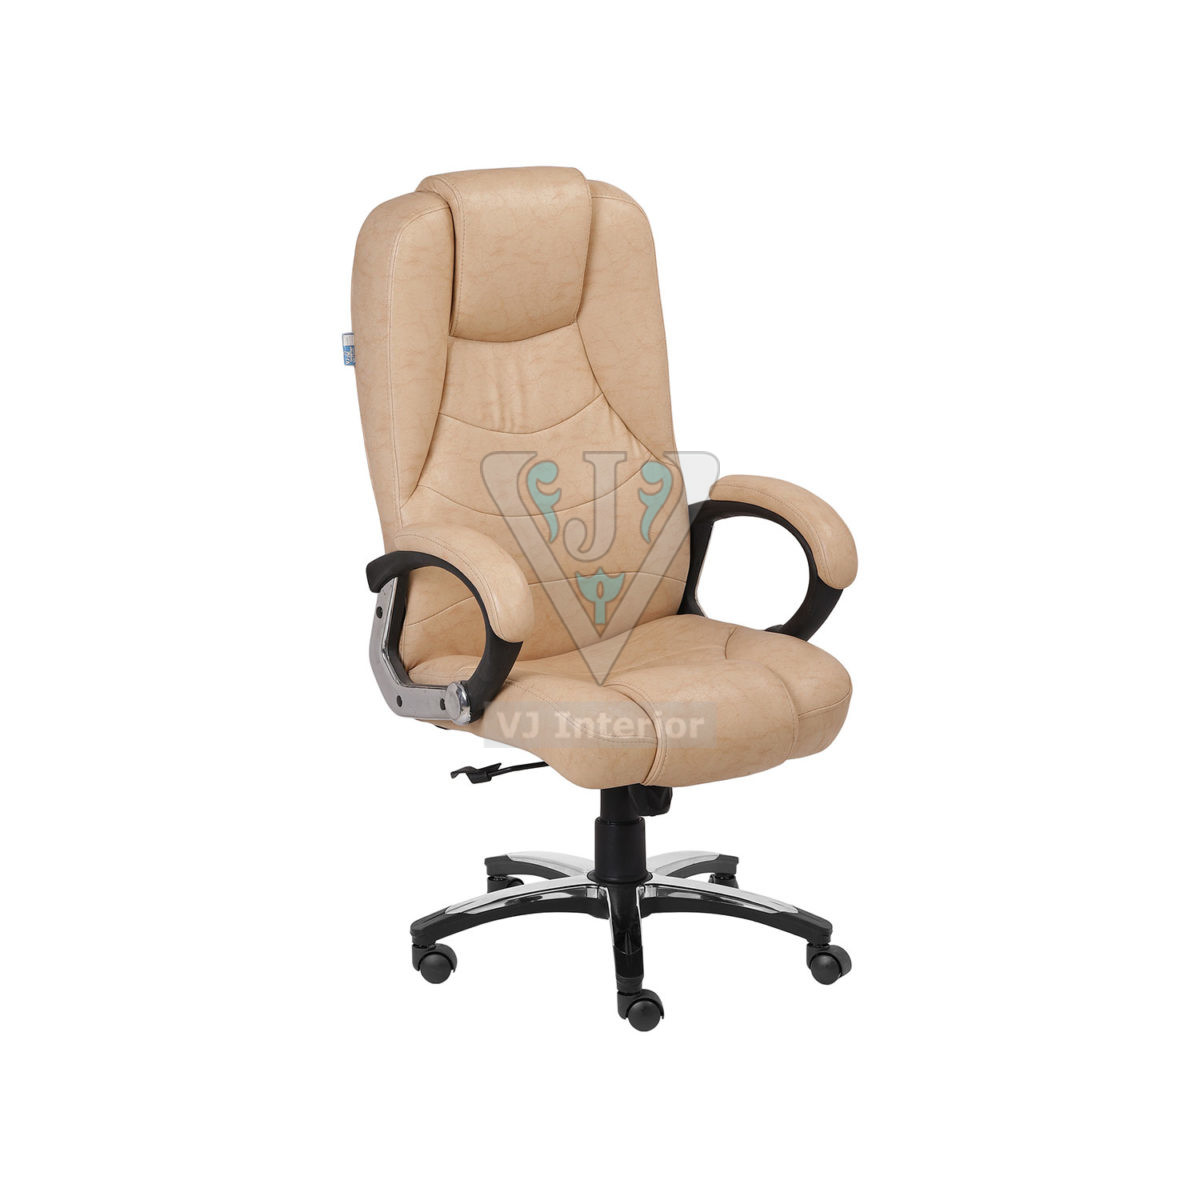 Affordable Office Executive chair Online In Tan Color